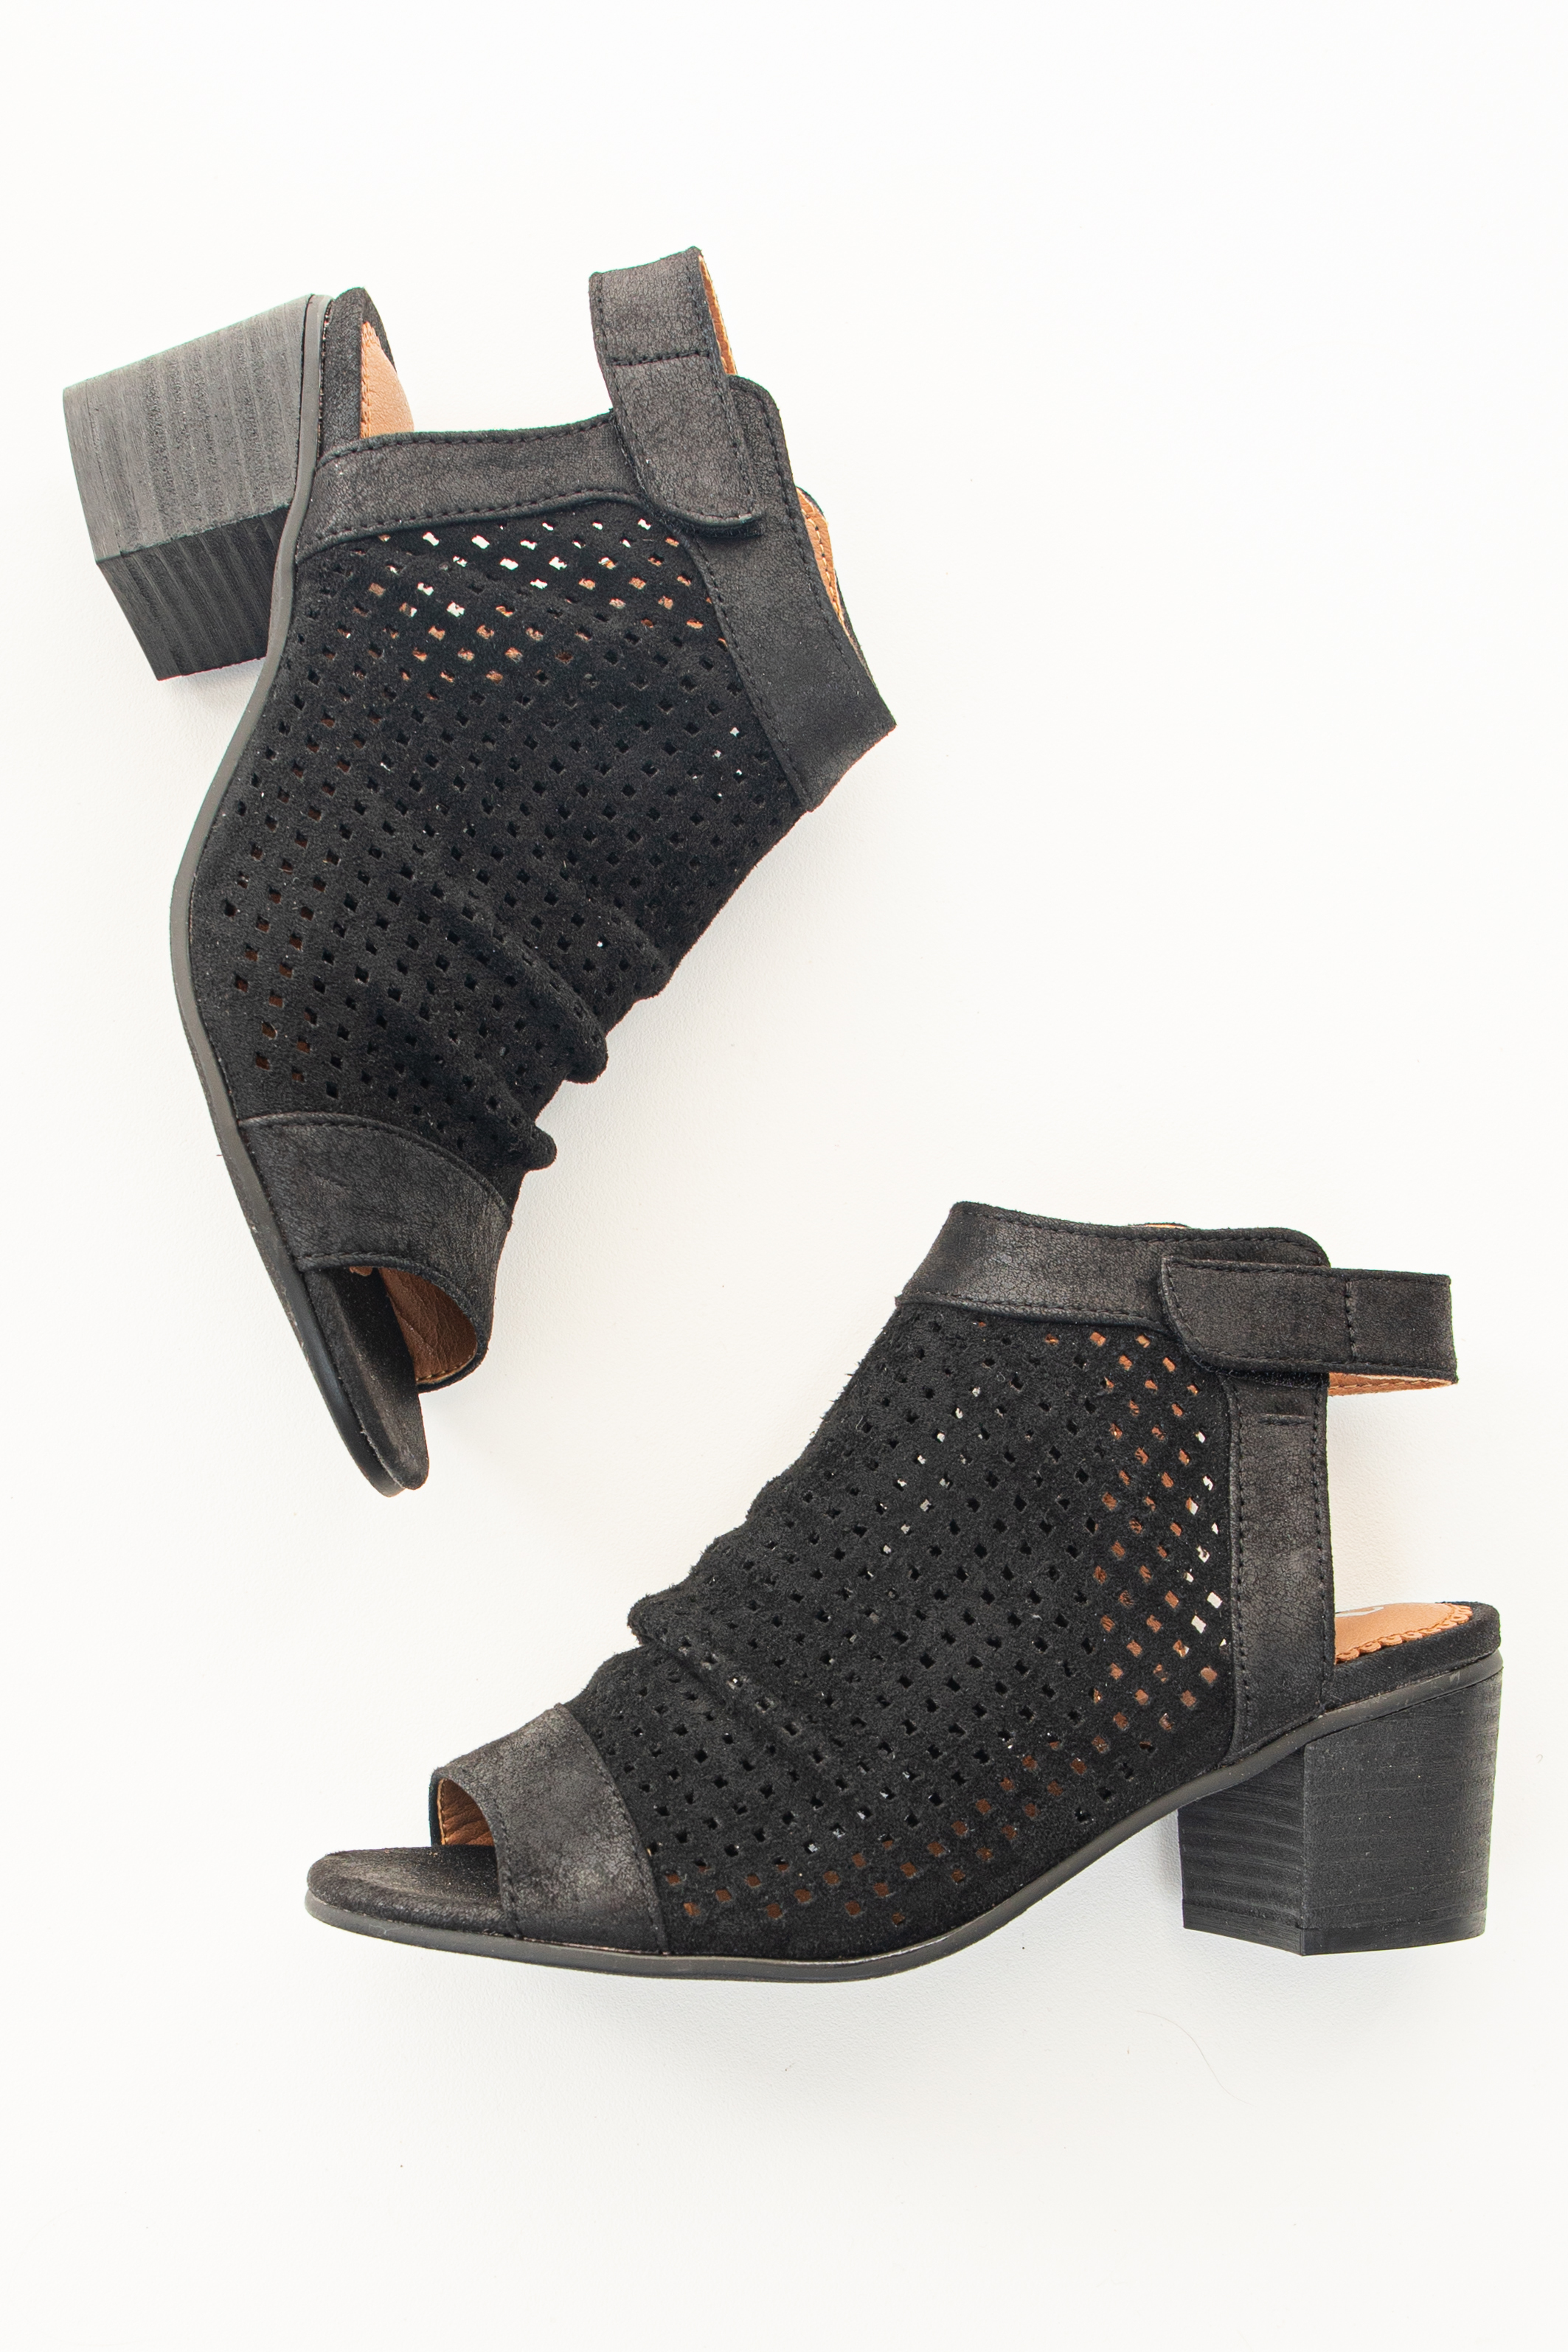 Ink Black Faux Suede Perforated Open Toe Heeled Sandal